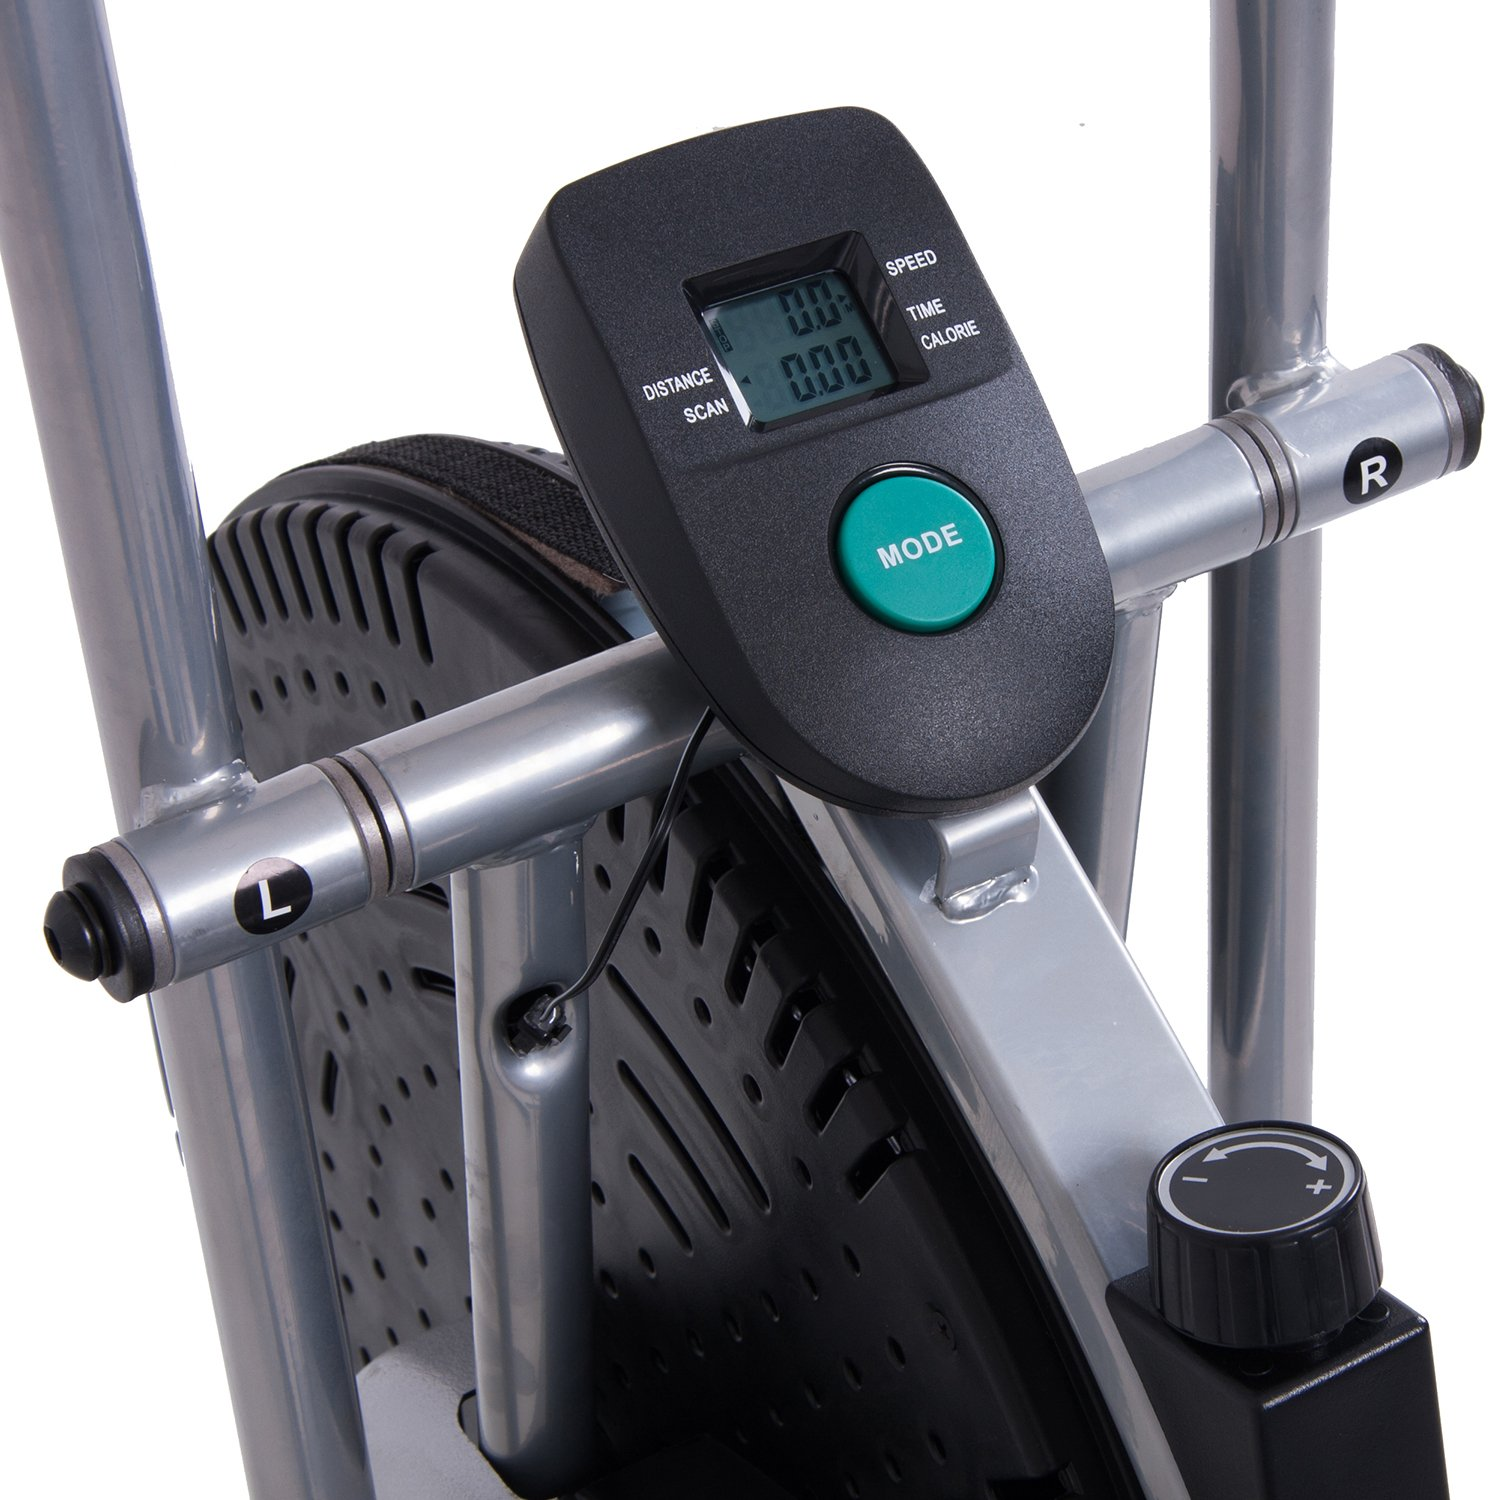 Body Rider Exercise Upright Fan Bike (with UPDATED Softer Seat) Stationary Fitness/Adjustable Seat BRF700 by Body Rider (Image #6)